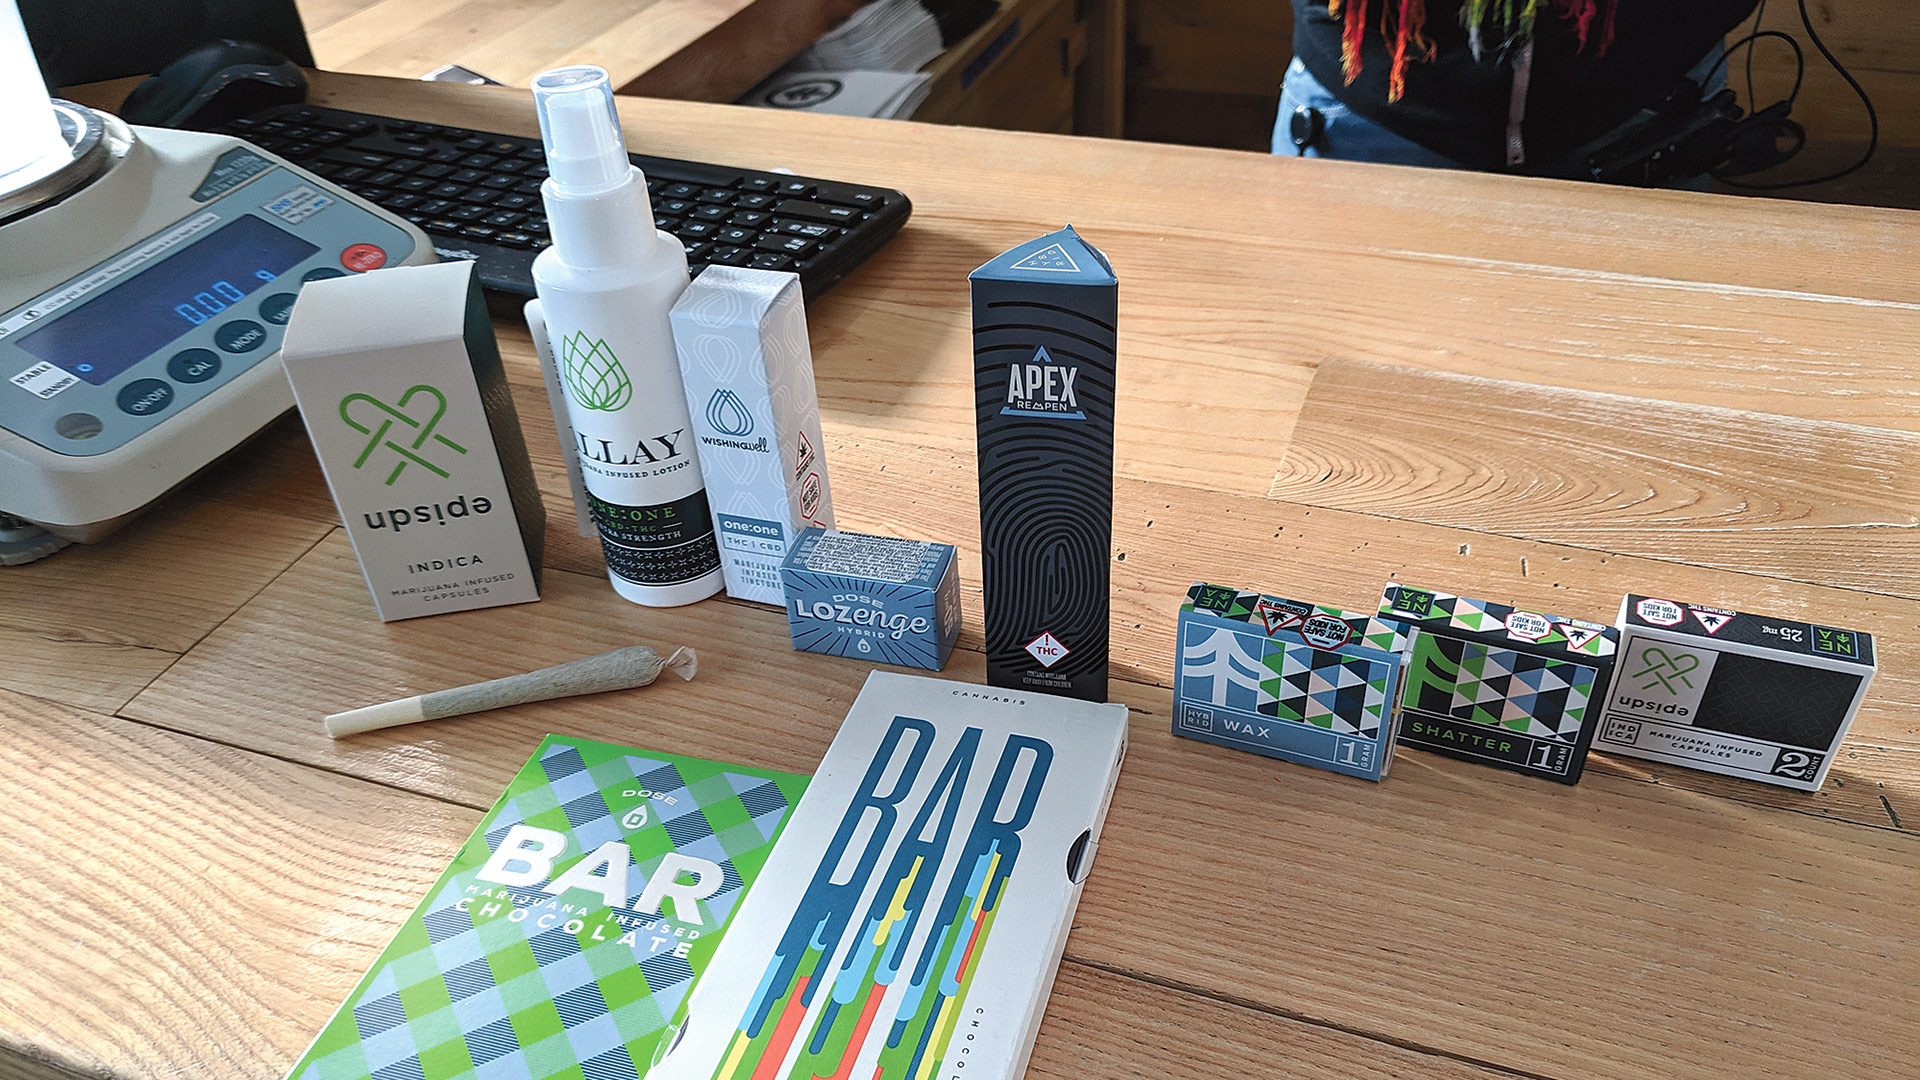 NETA's products for sale include not just smokeable flower, but marijuana-infused capsules, lozenges, lotions, chocolate, and much more.